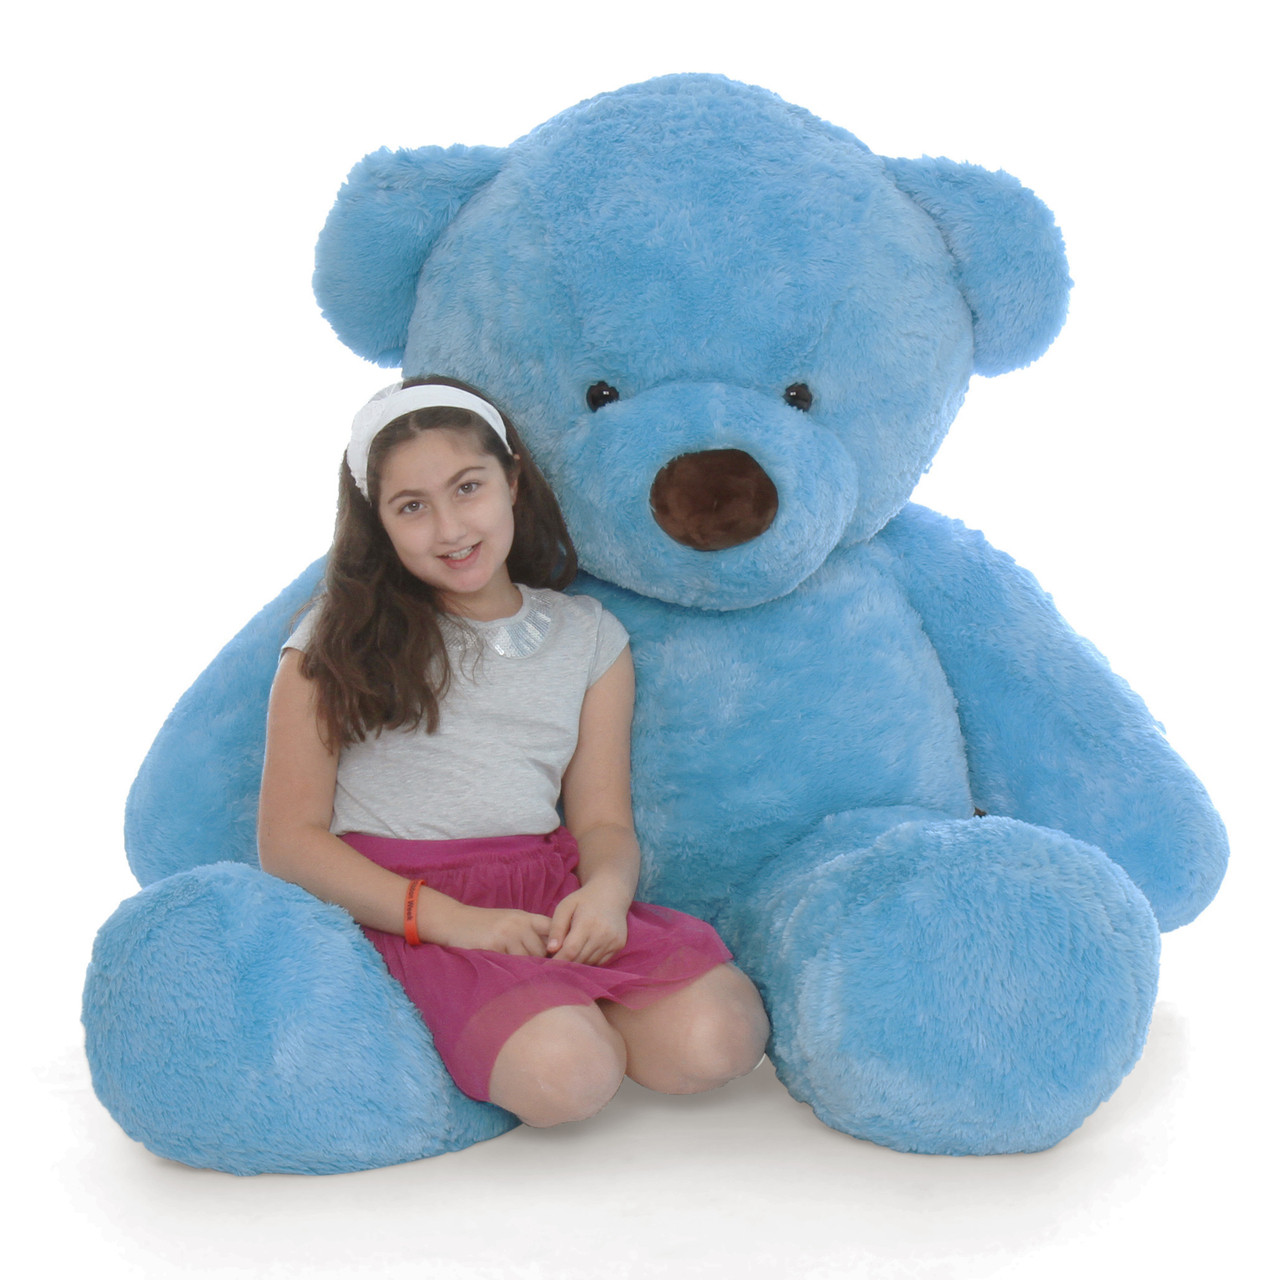 Big Blue Teddy Bear Sammy Chubs 72in